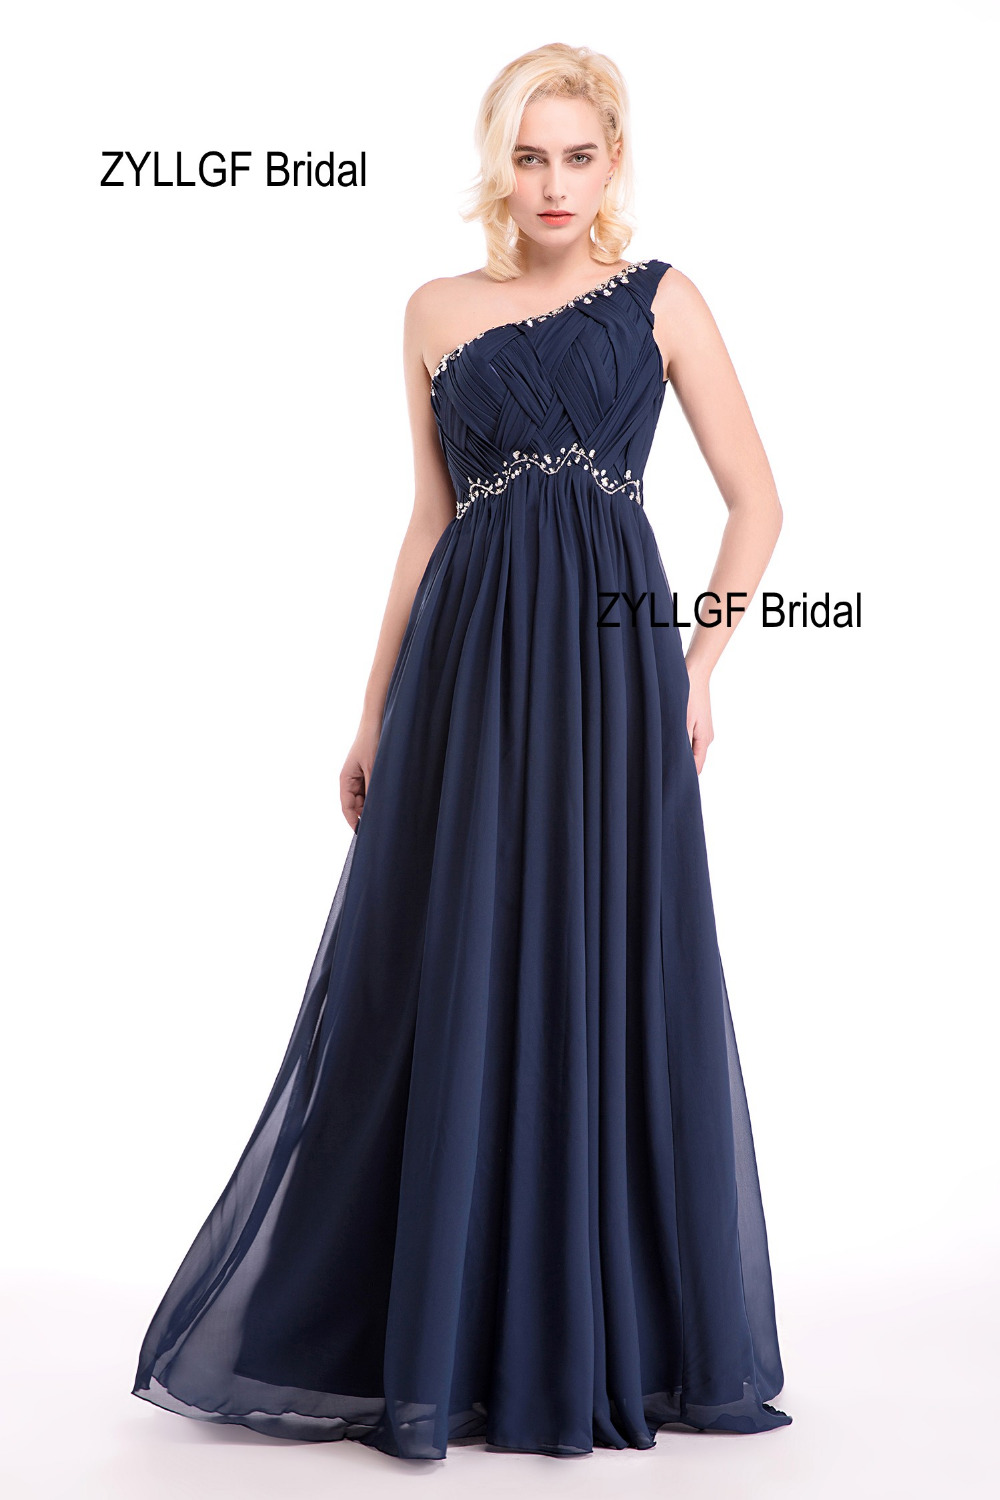 ZYLLGF Bridal One Shoulder Long Chiffon Navy Blue Evening Dresses High Quality Real Formal Women Evening Gown With Beadings 8127(China)